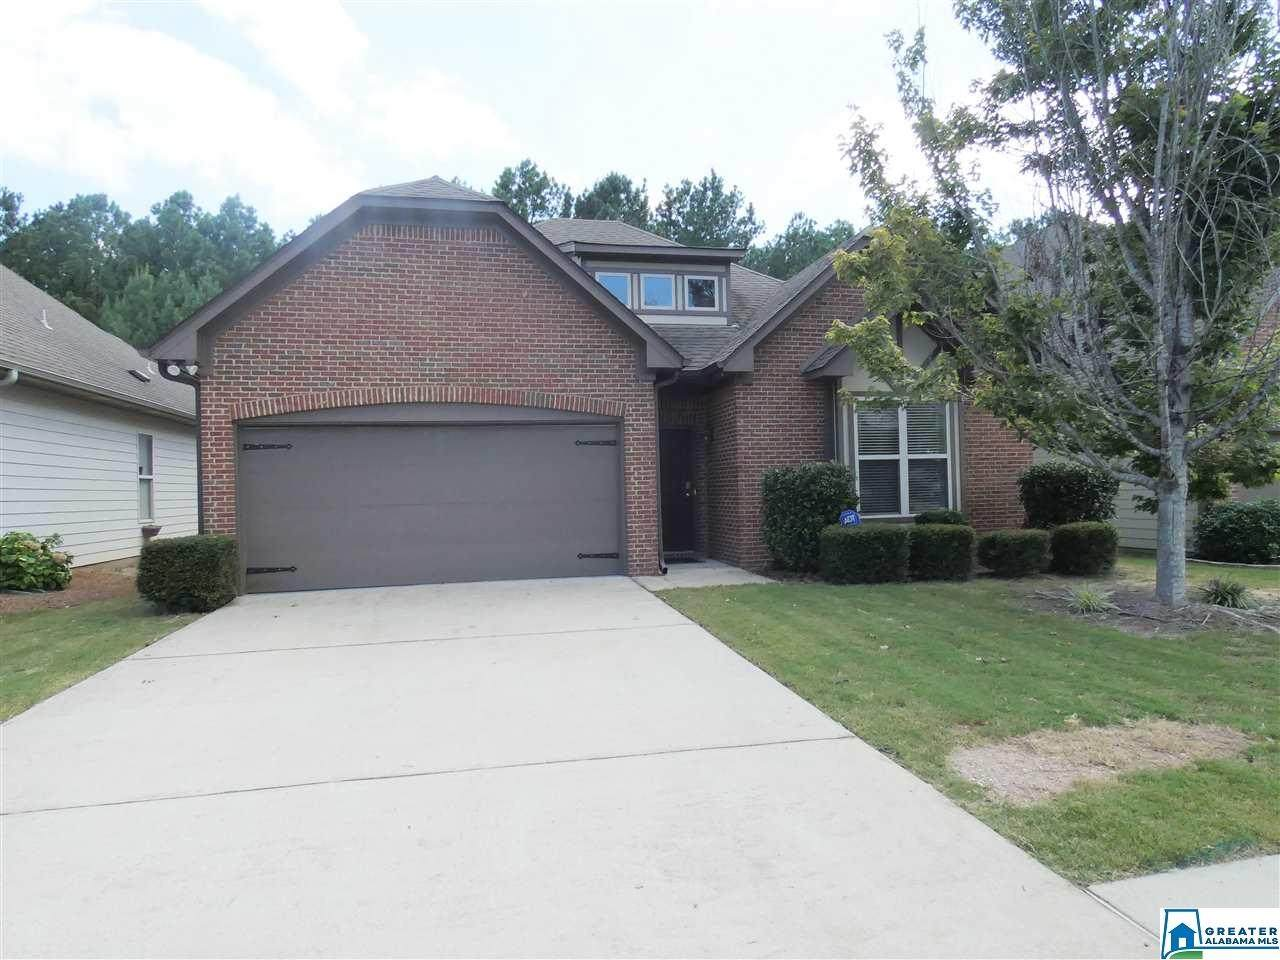 2146 Timberline Dr - Photo 1